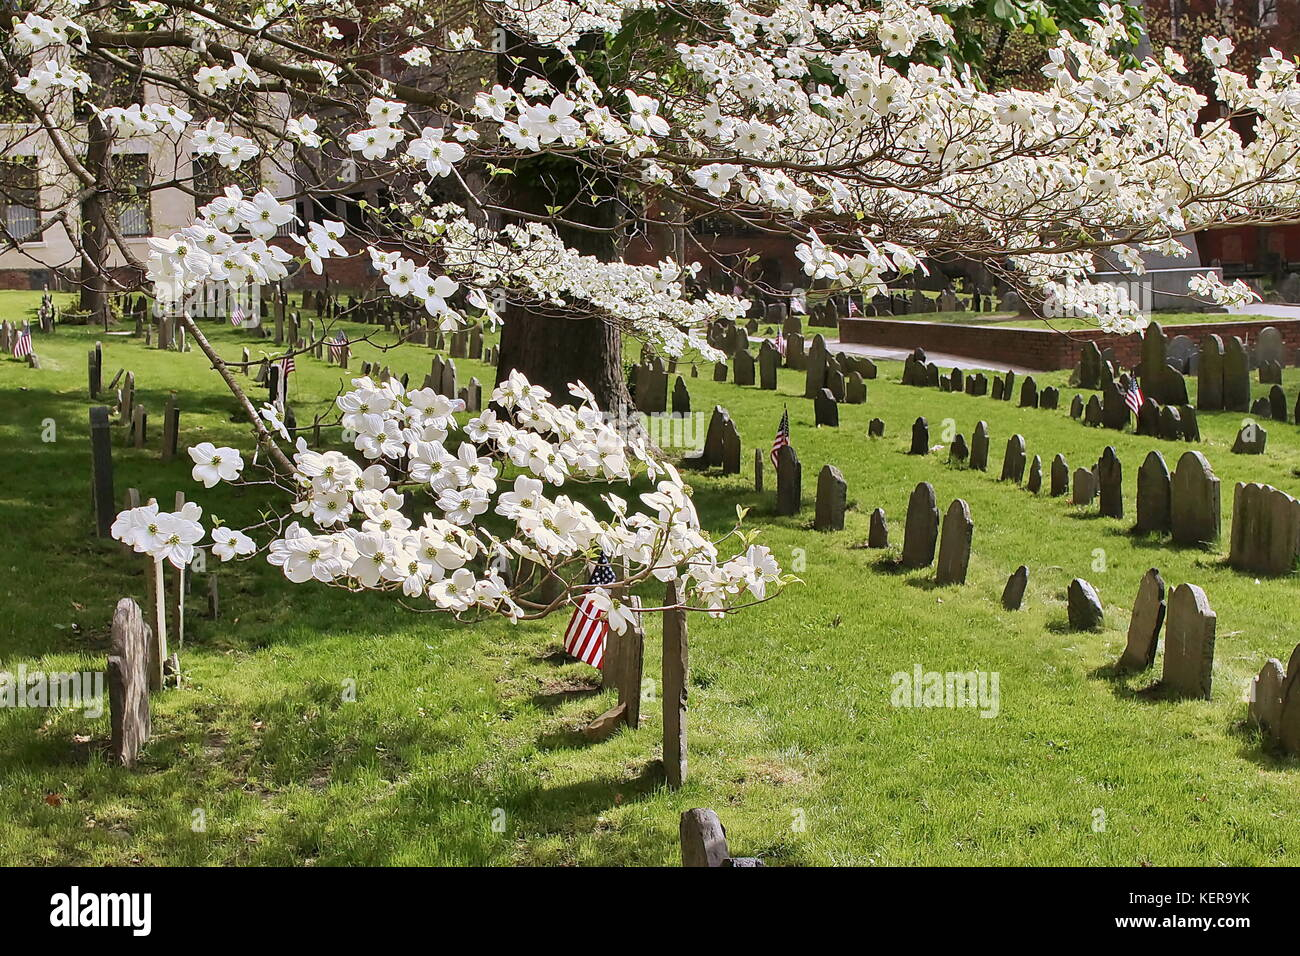 A Dogwood tree in bloom in Granary Burying Ground in Boston, MA - Stock Image